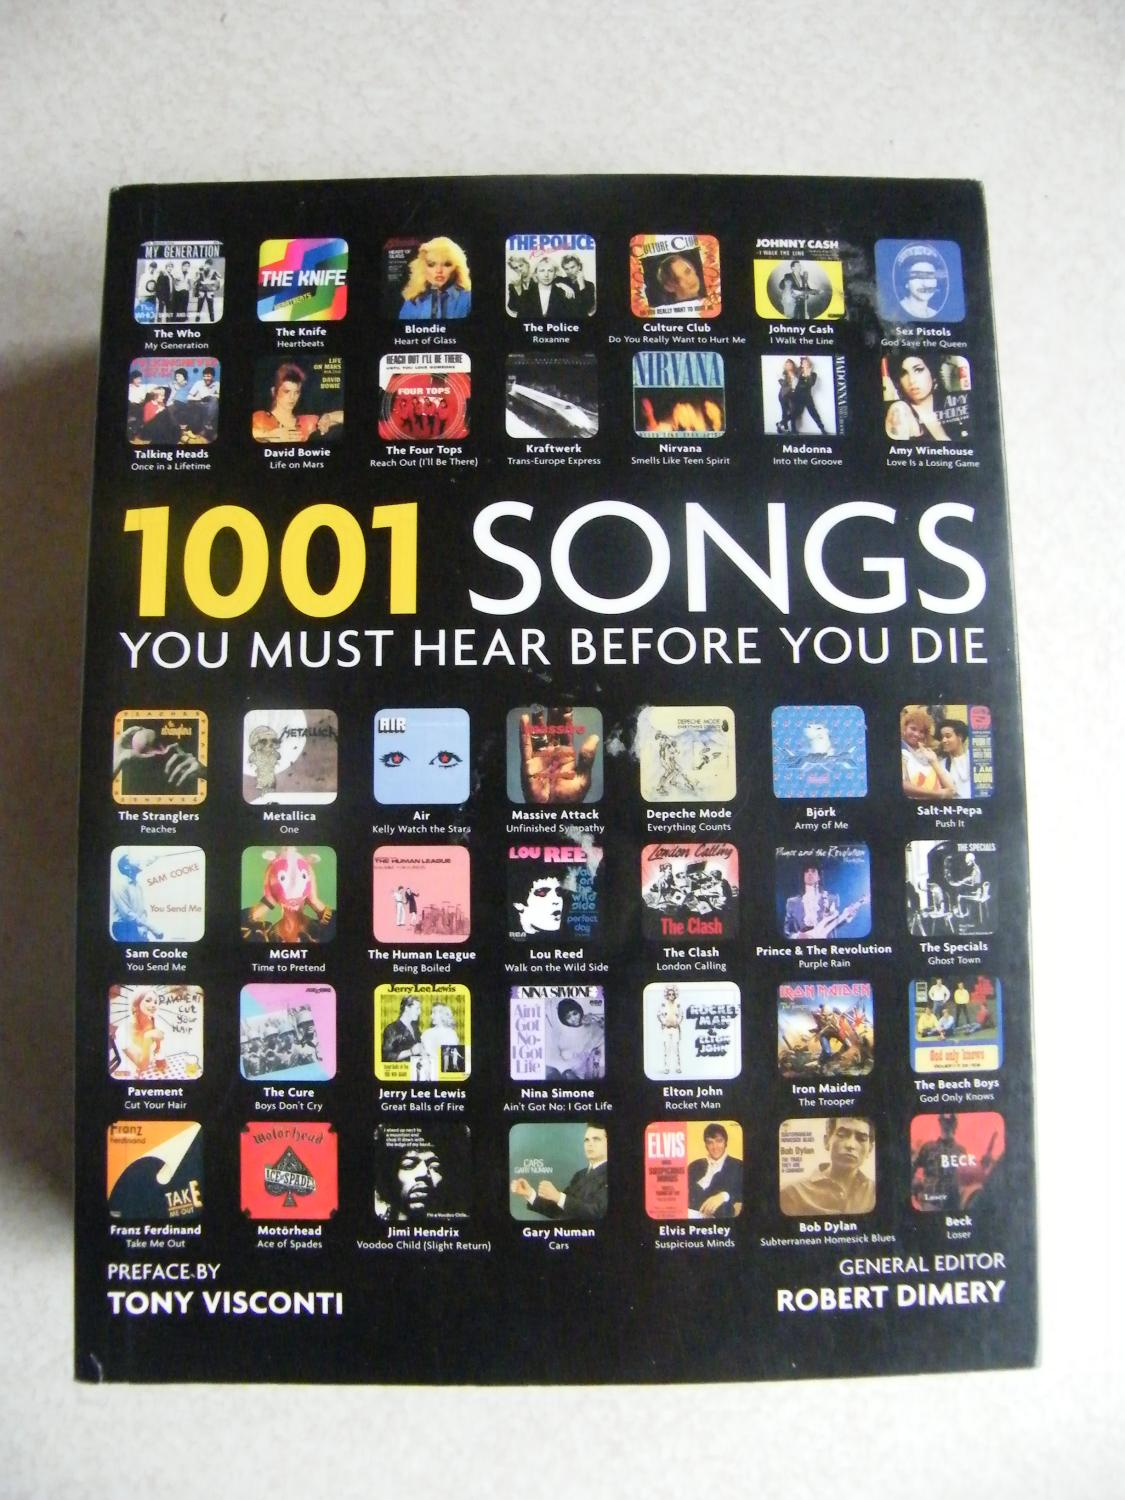 1001 Songs You Must Hear Before You Die - Editor: Robert Dimery